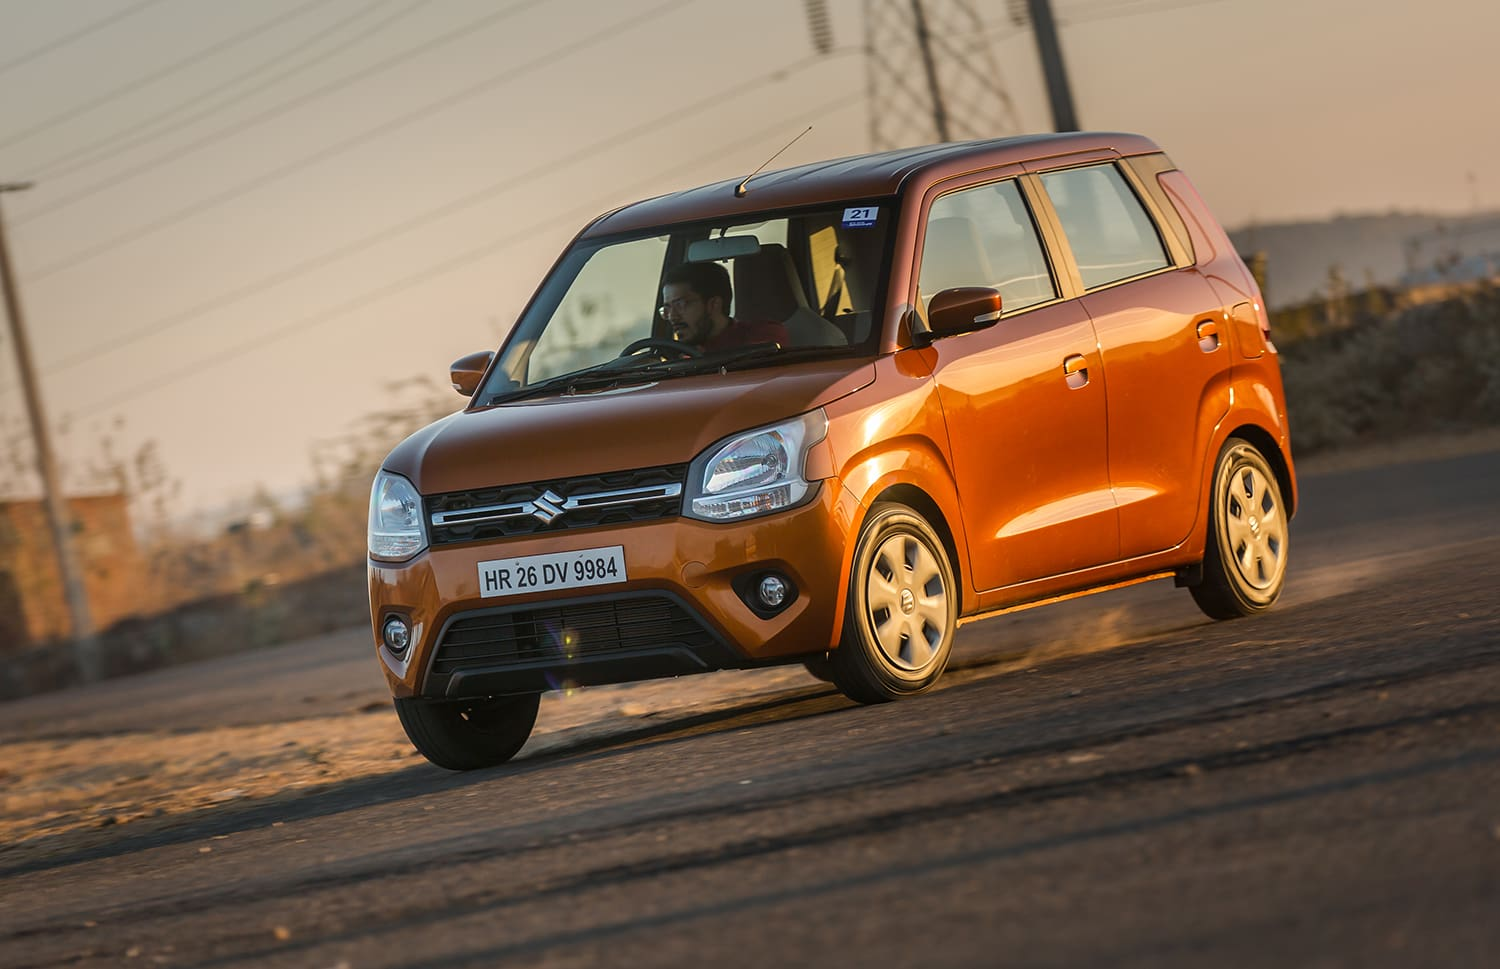 New Maruti Wagon R 2019 Review: First Drive